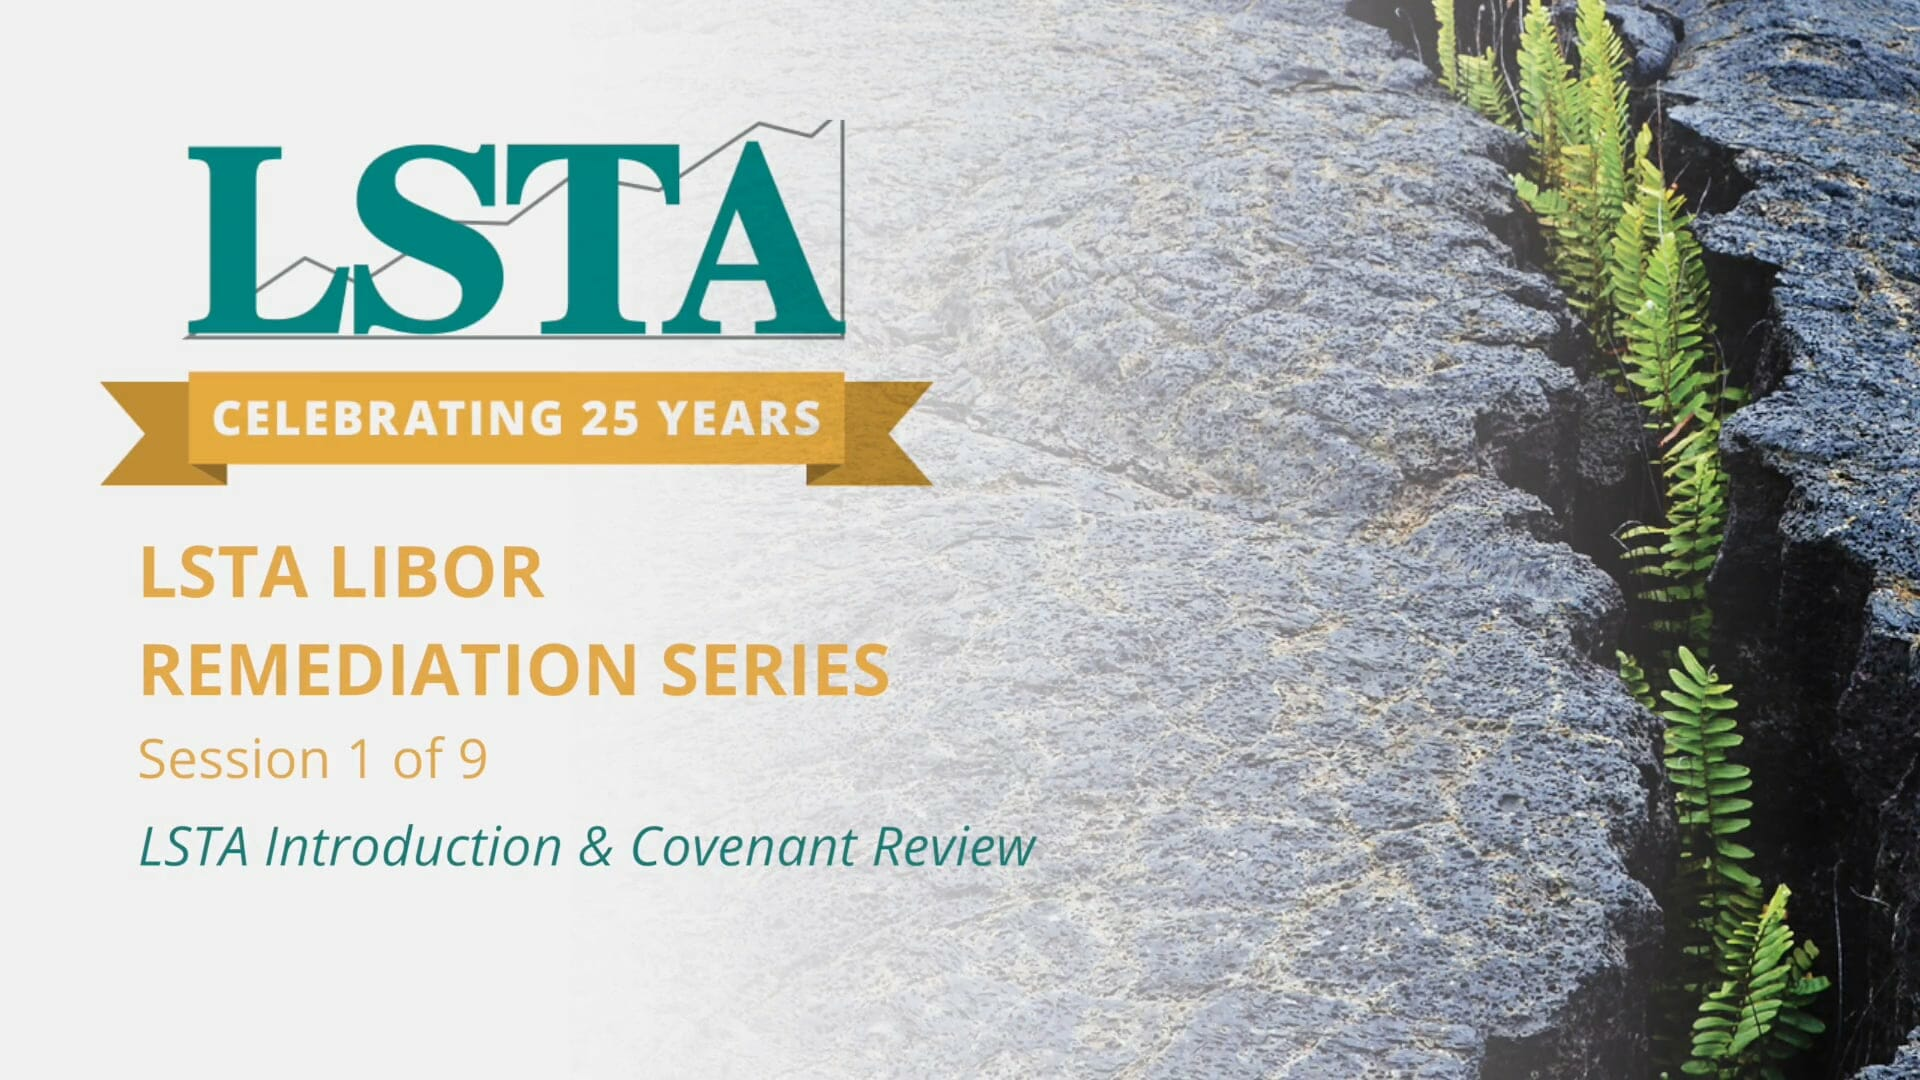 LSTA LIBOR Remediation Series Video – Intro and Covenant Review